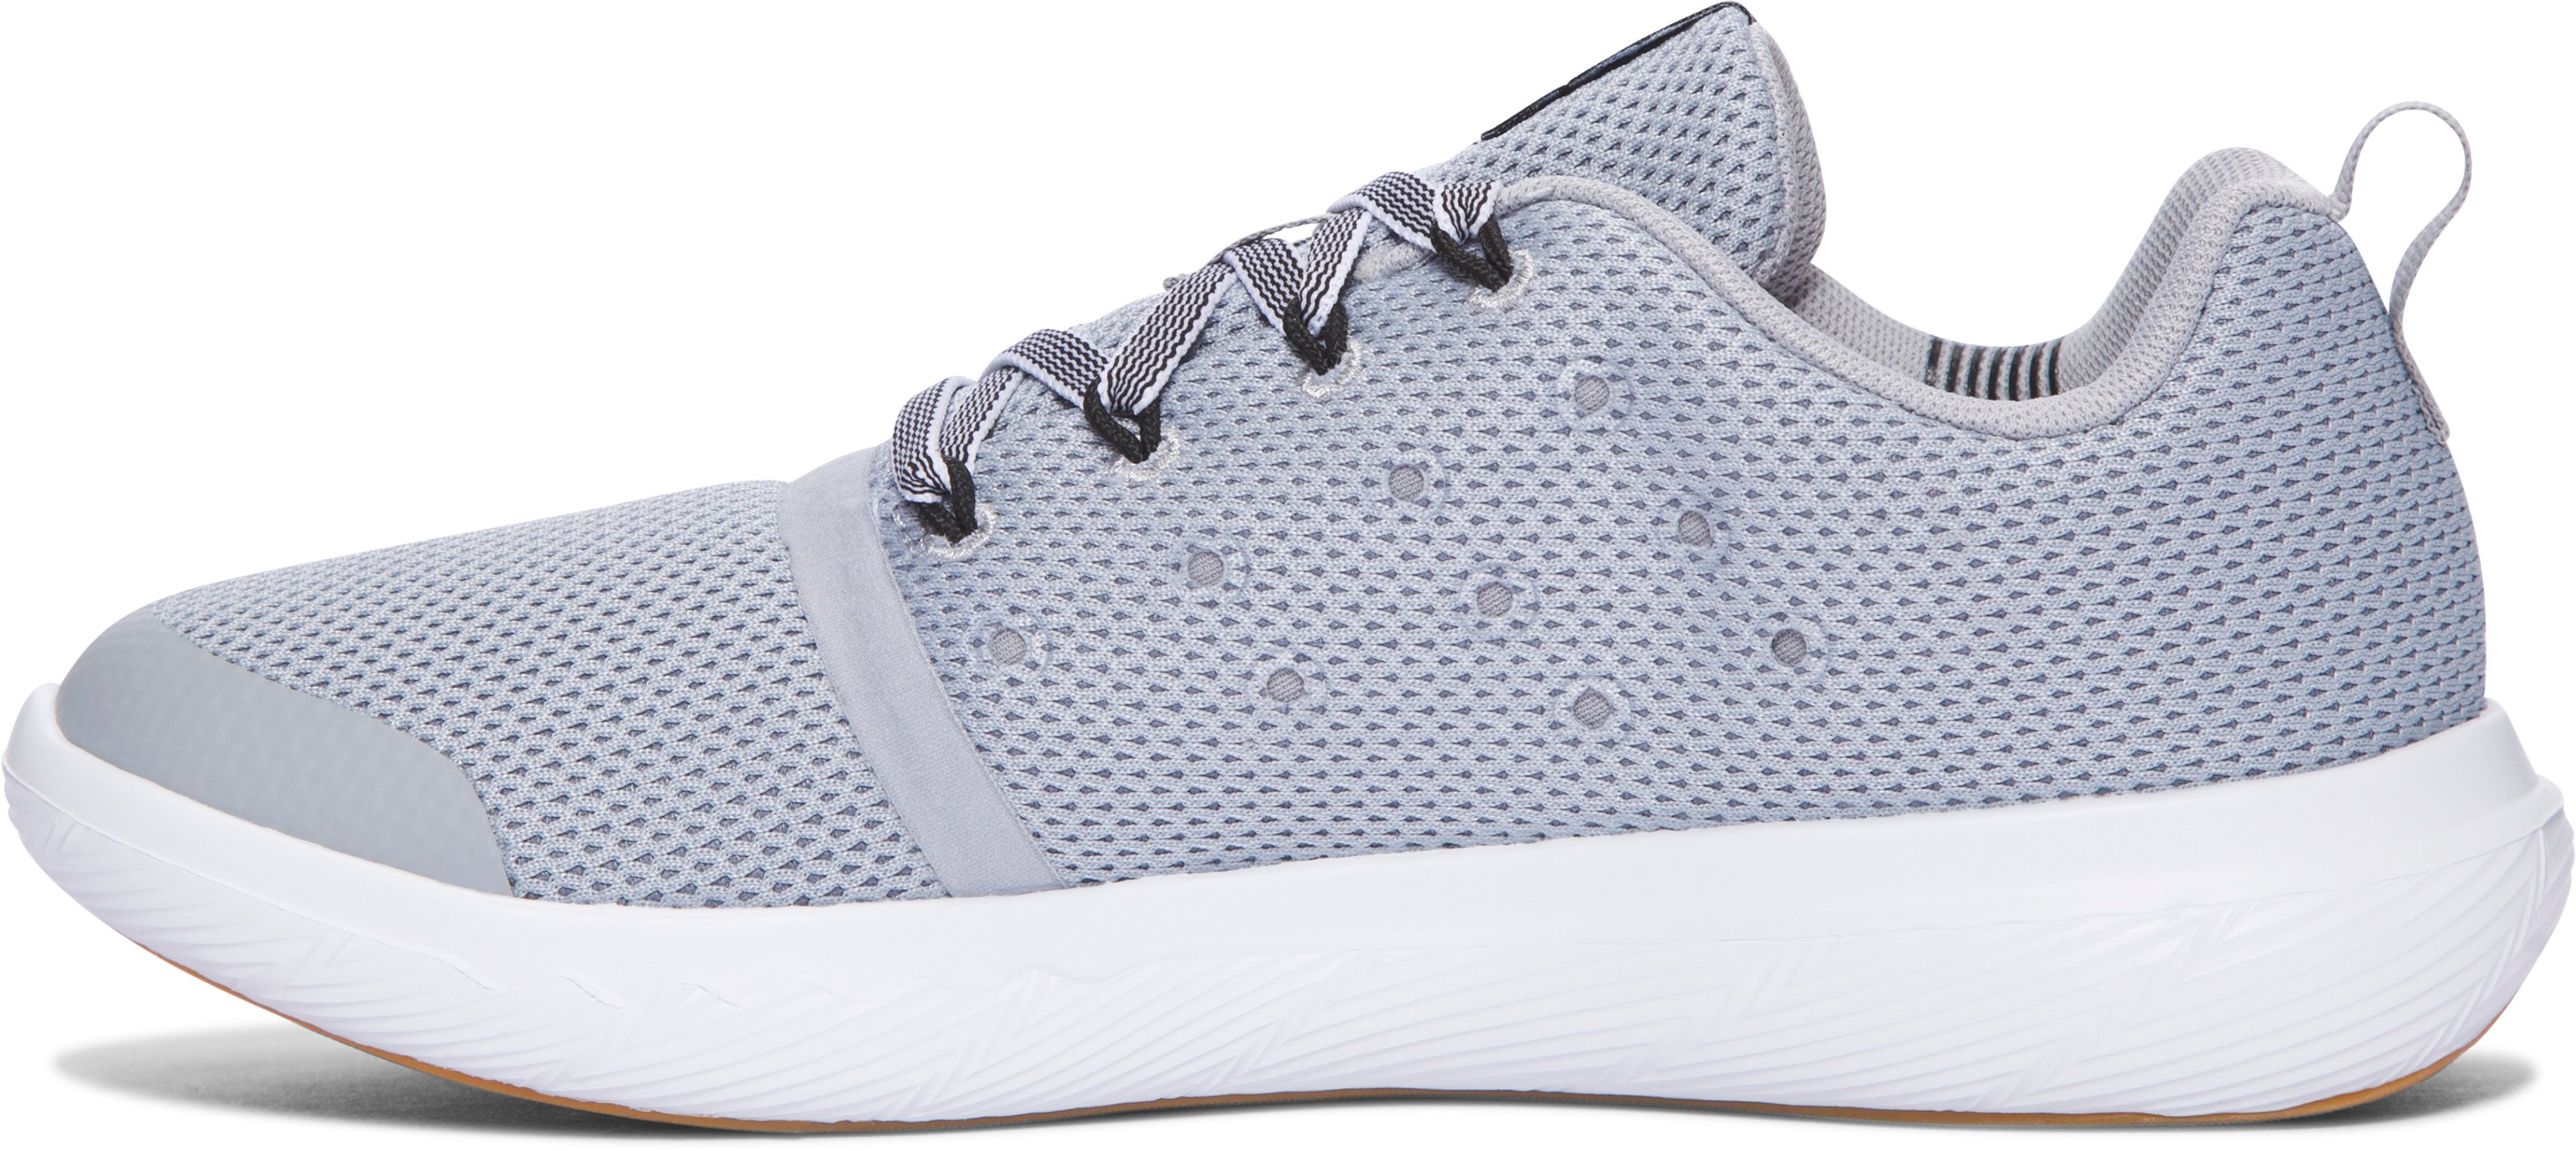 Kids' Grade School UA Charged 24/7 Low Vibes Lifestyle Shoes, OVERCAST GRAY, undefined